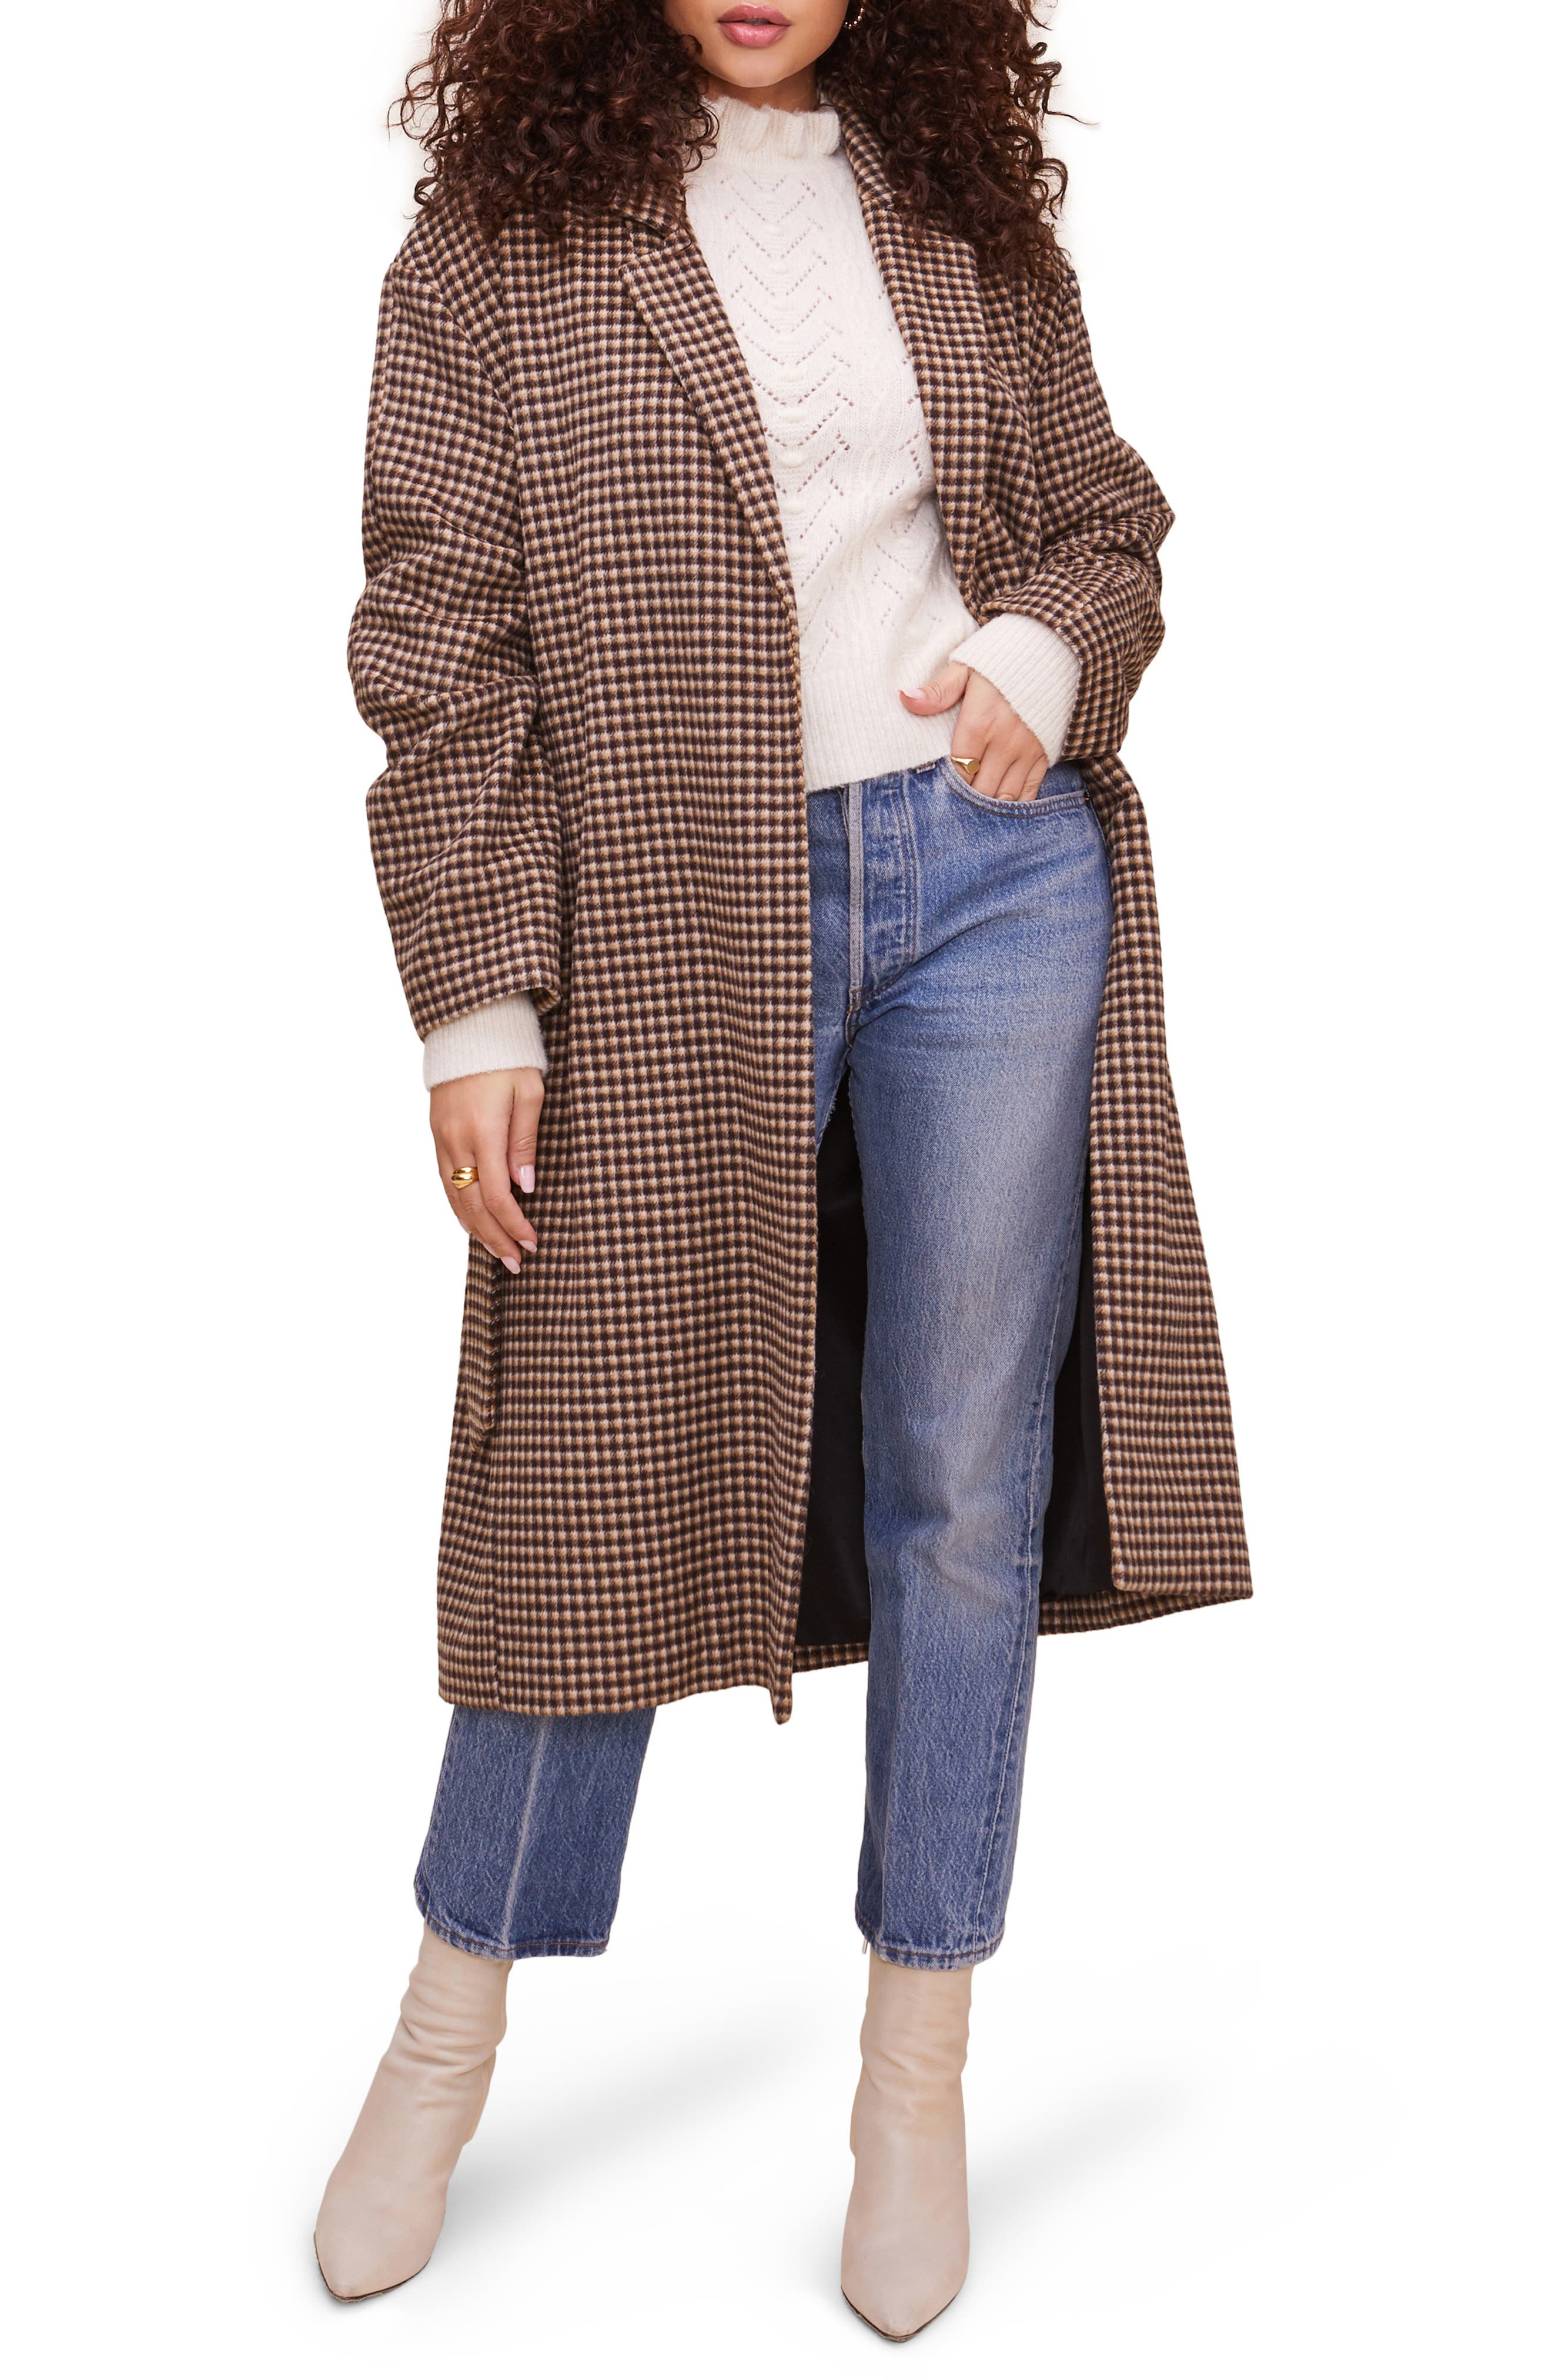 Vintage Coats & Jackets | Retro Coats and Jackets Womens Astr The Label Roxanne Belted Coat Size Small - Brown $198.00 AT vintagedancer.com